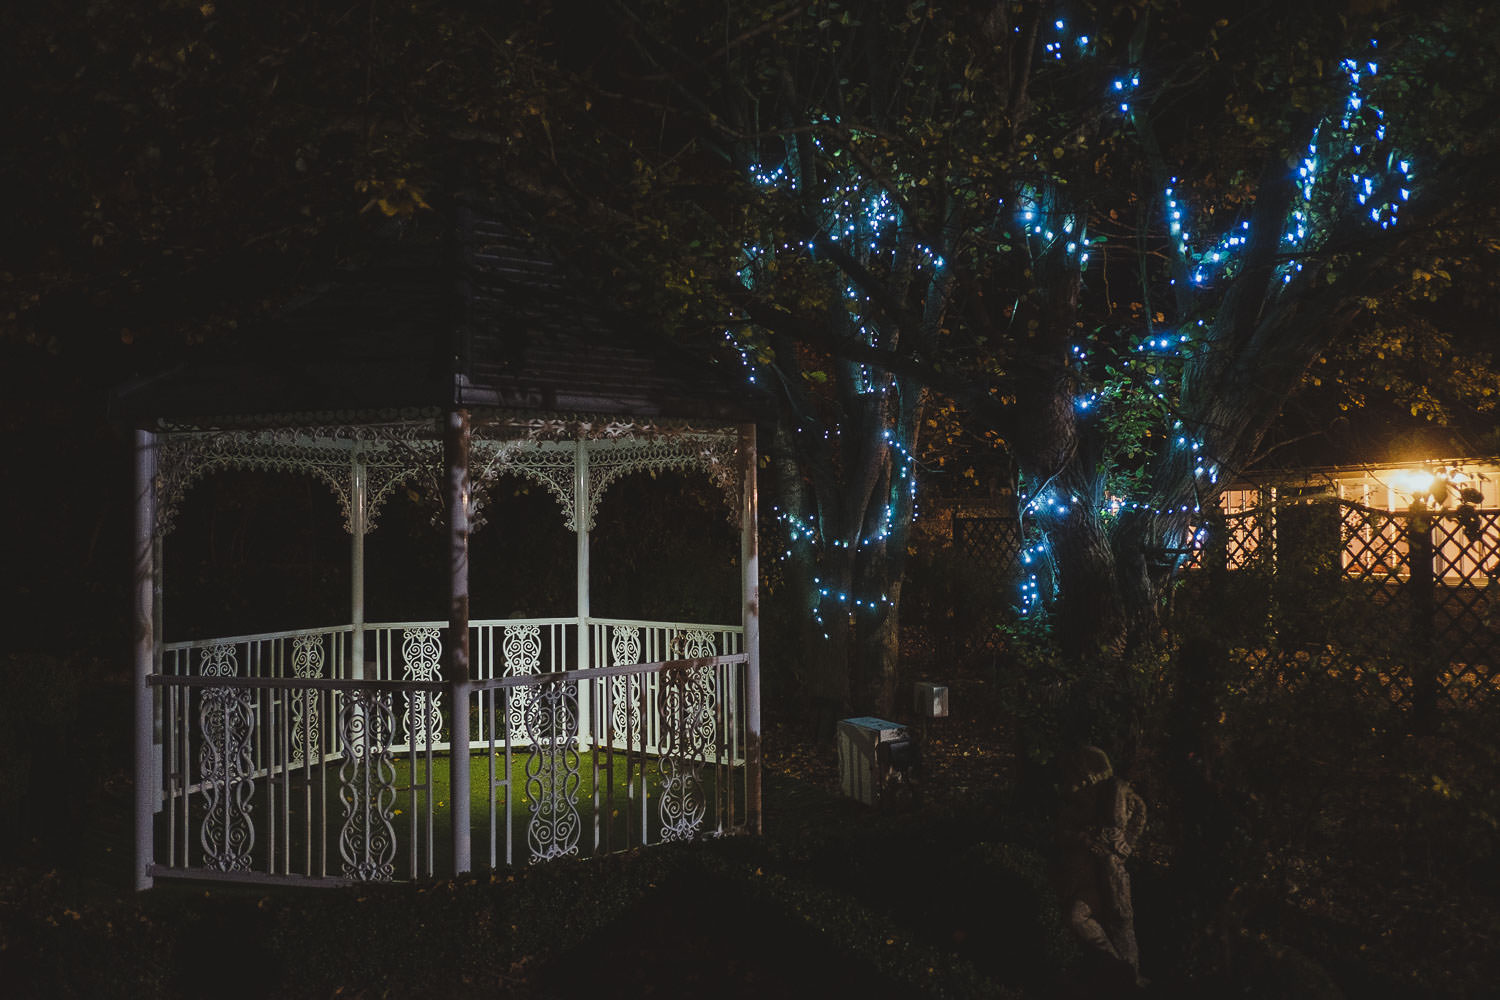 The gazebo lit up at night by fairy lights in the trees.